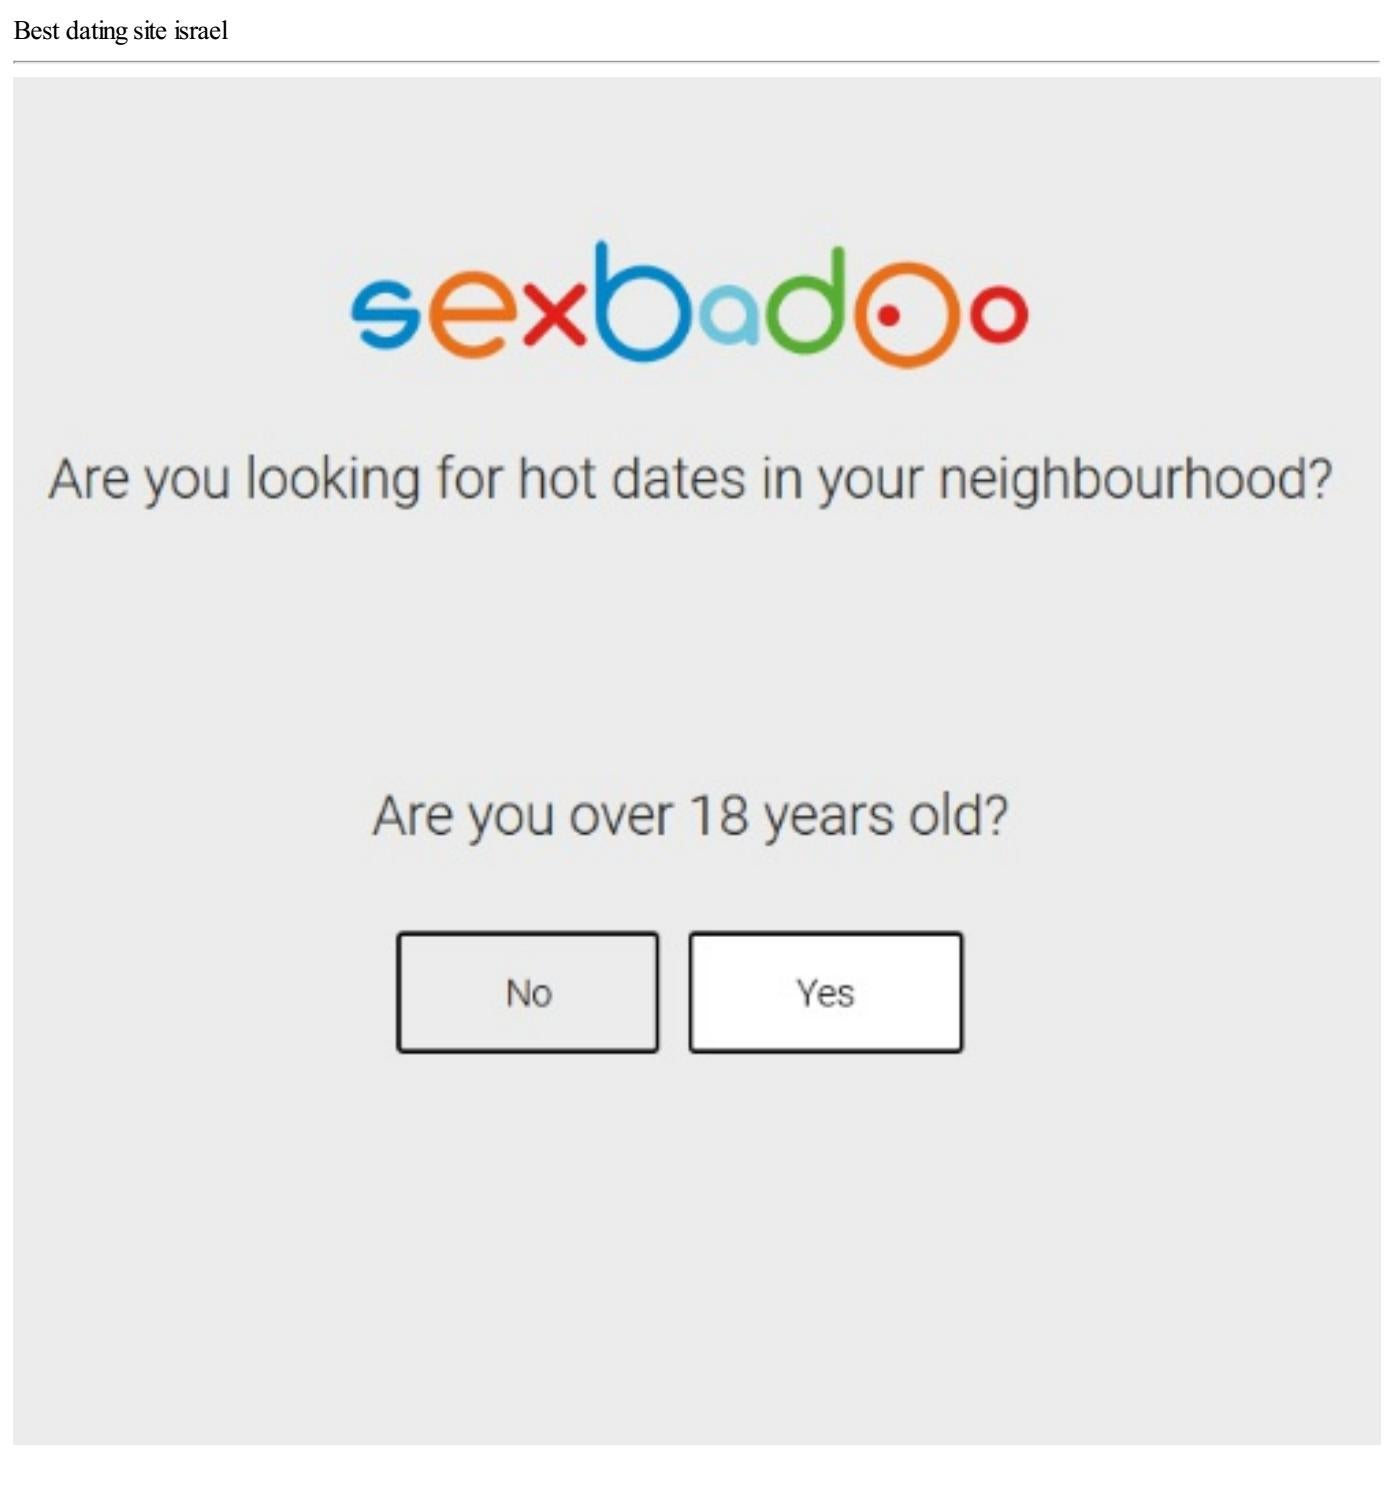 dating site in israel